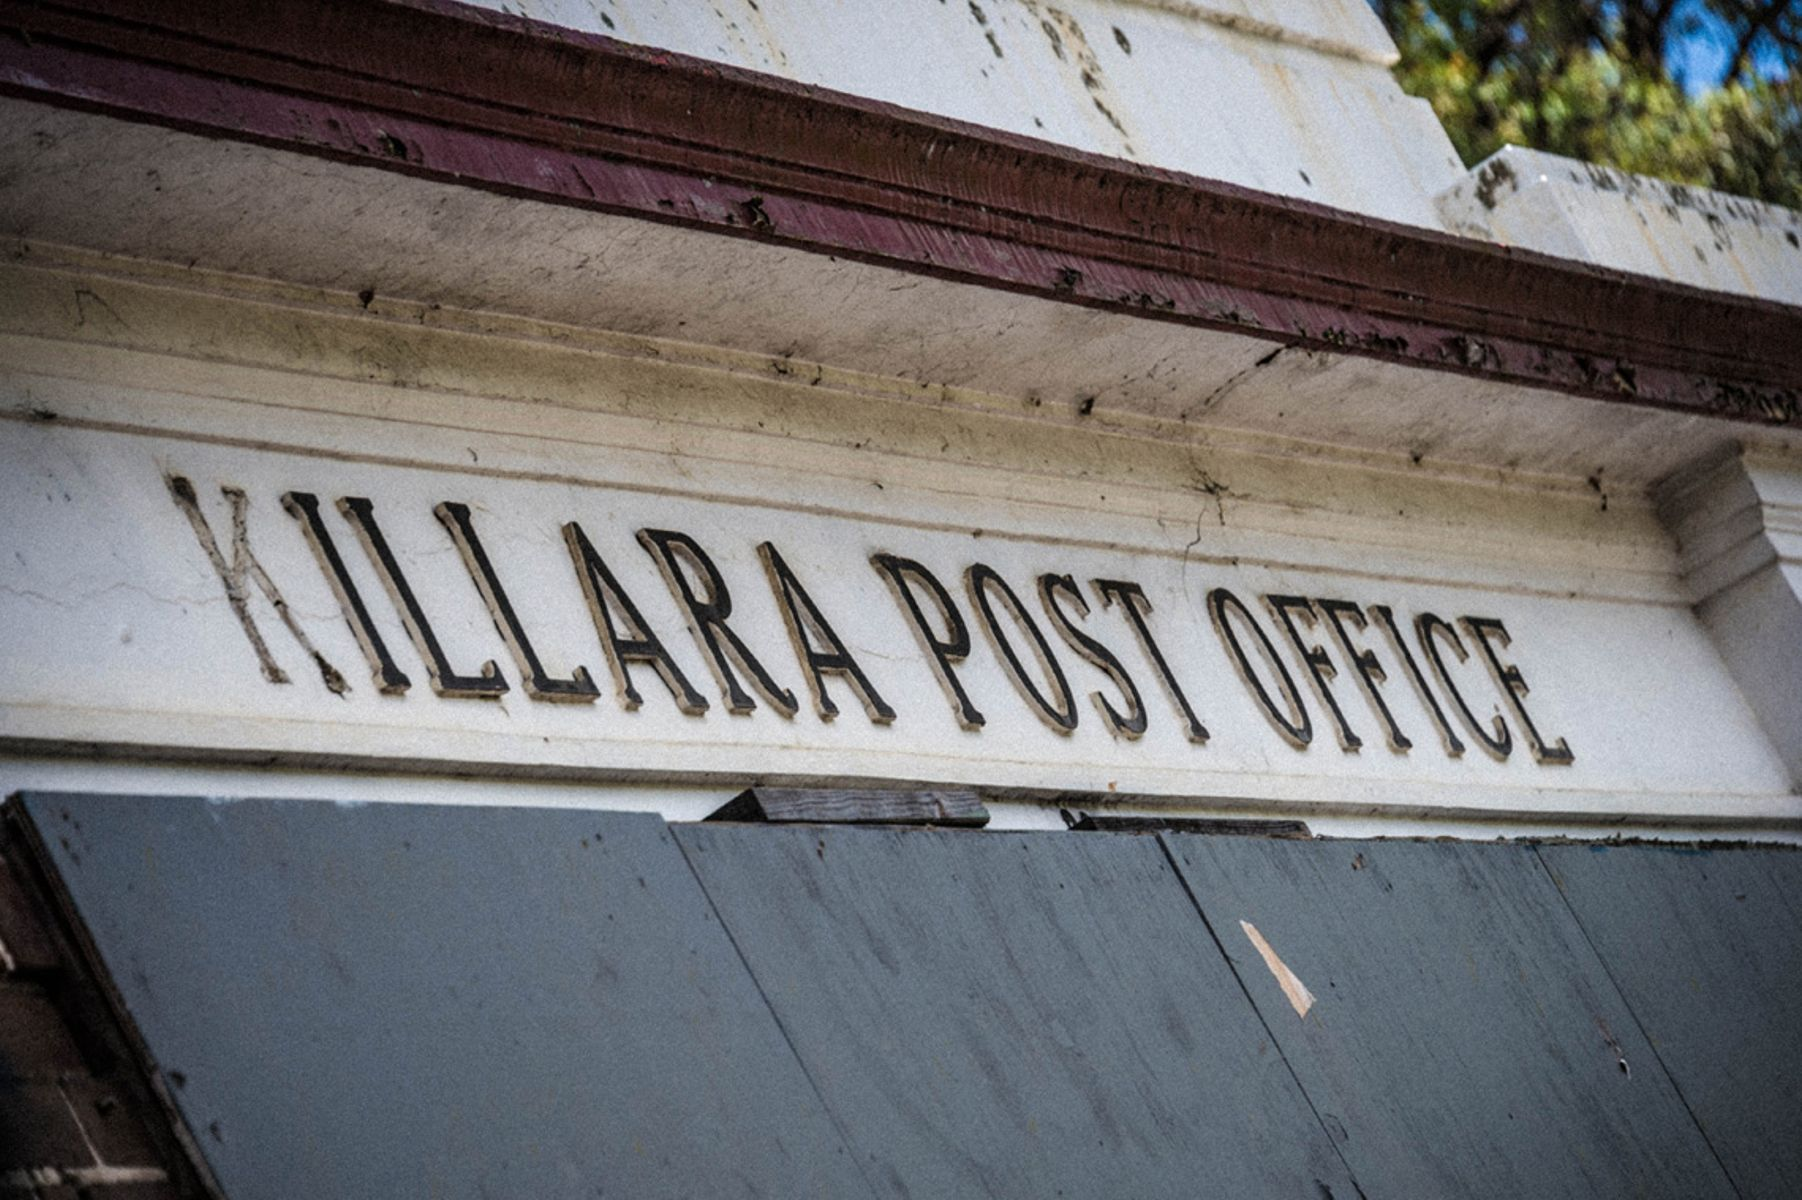 MB - Killara - Post Office